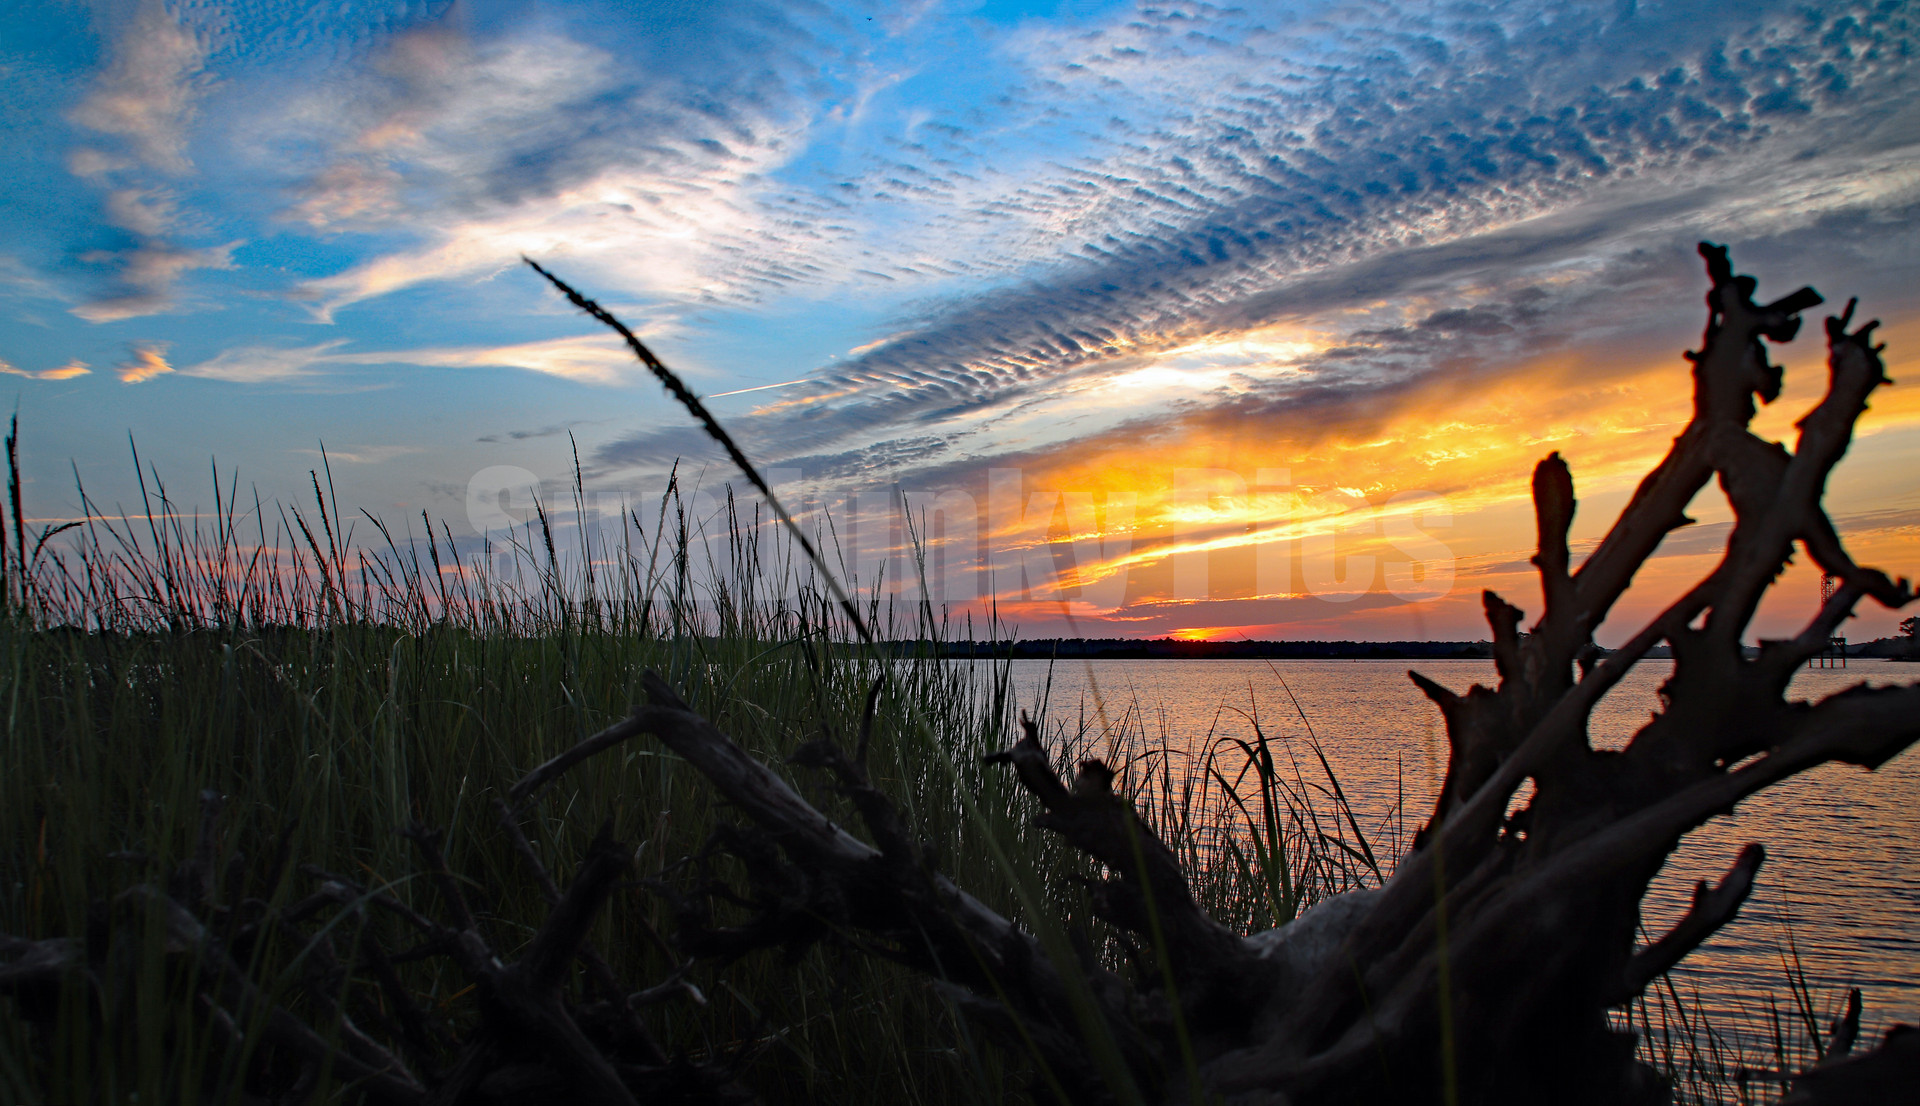 Cape Fear Sunset  Feature of the day on Digital SLR Photography Magazine site